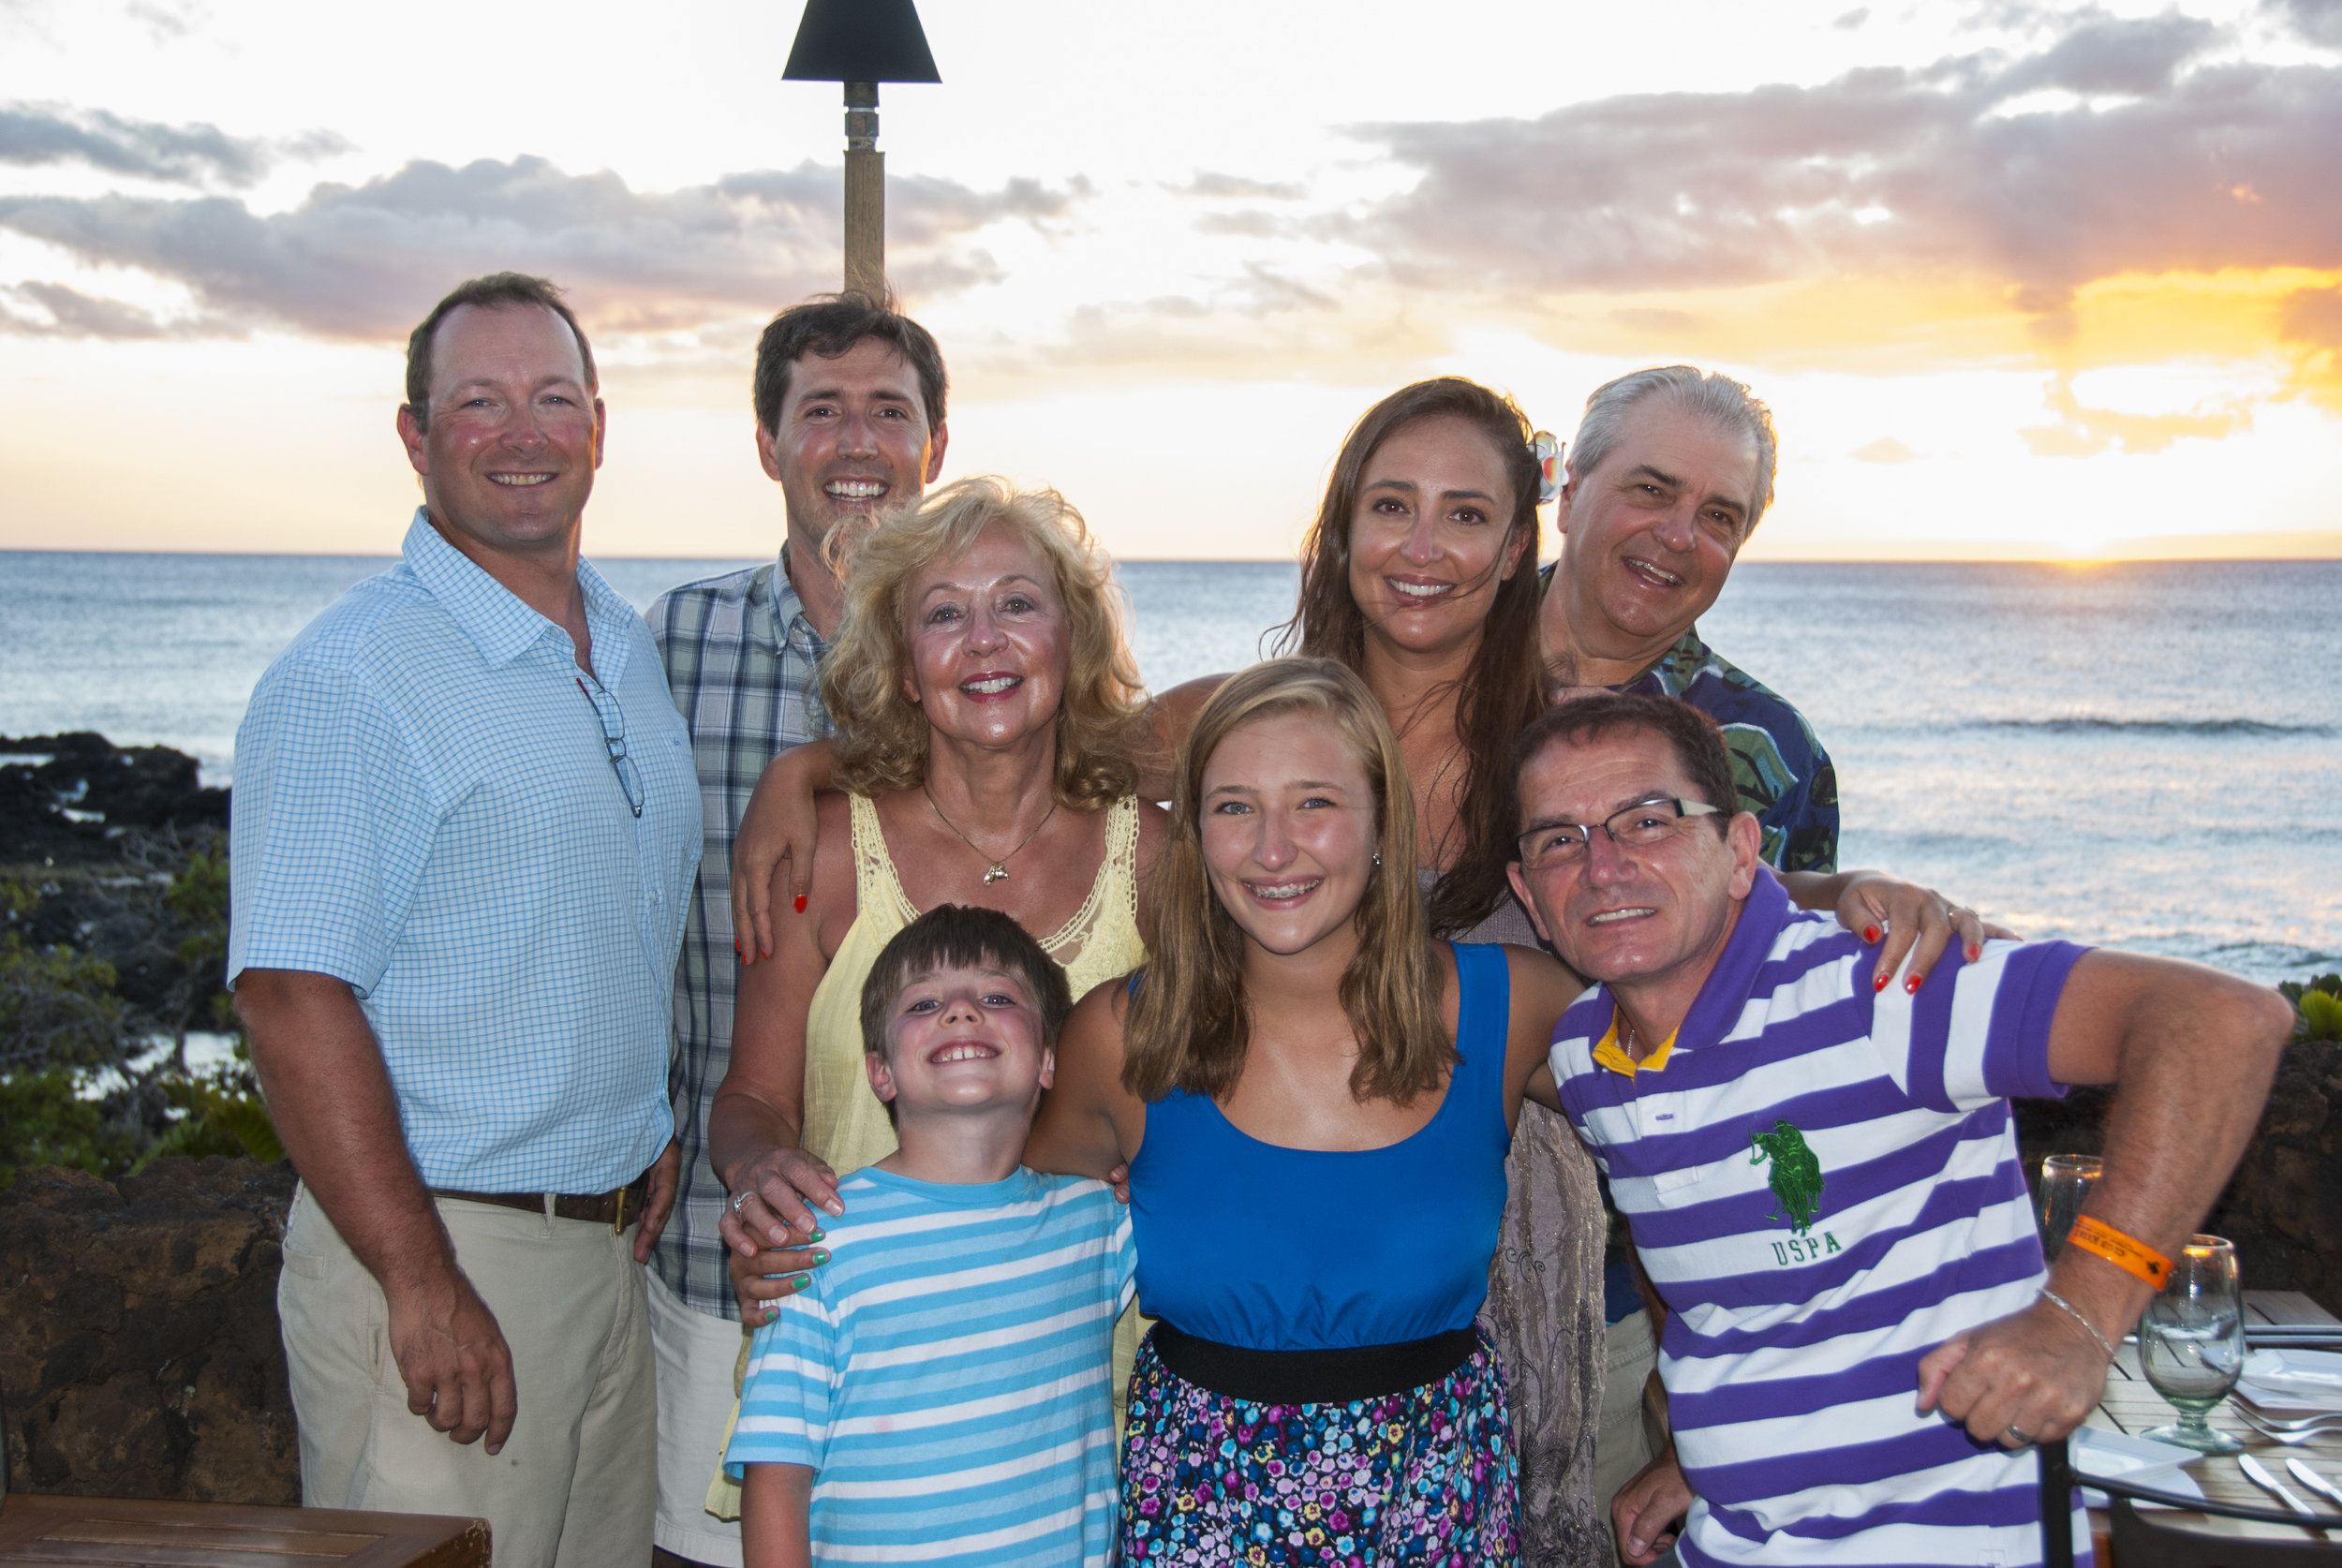 Dave (top right) enjoys traveling with family and friends when his busy schedule allows.